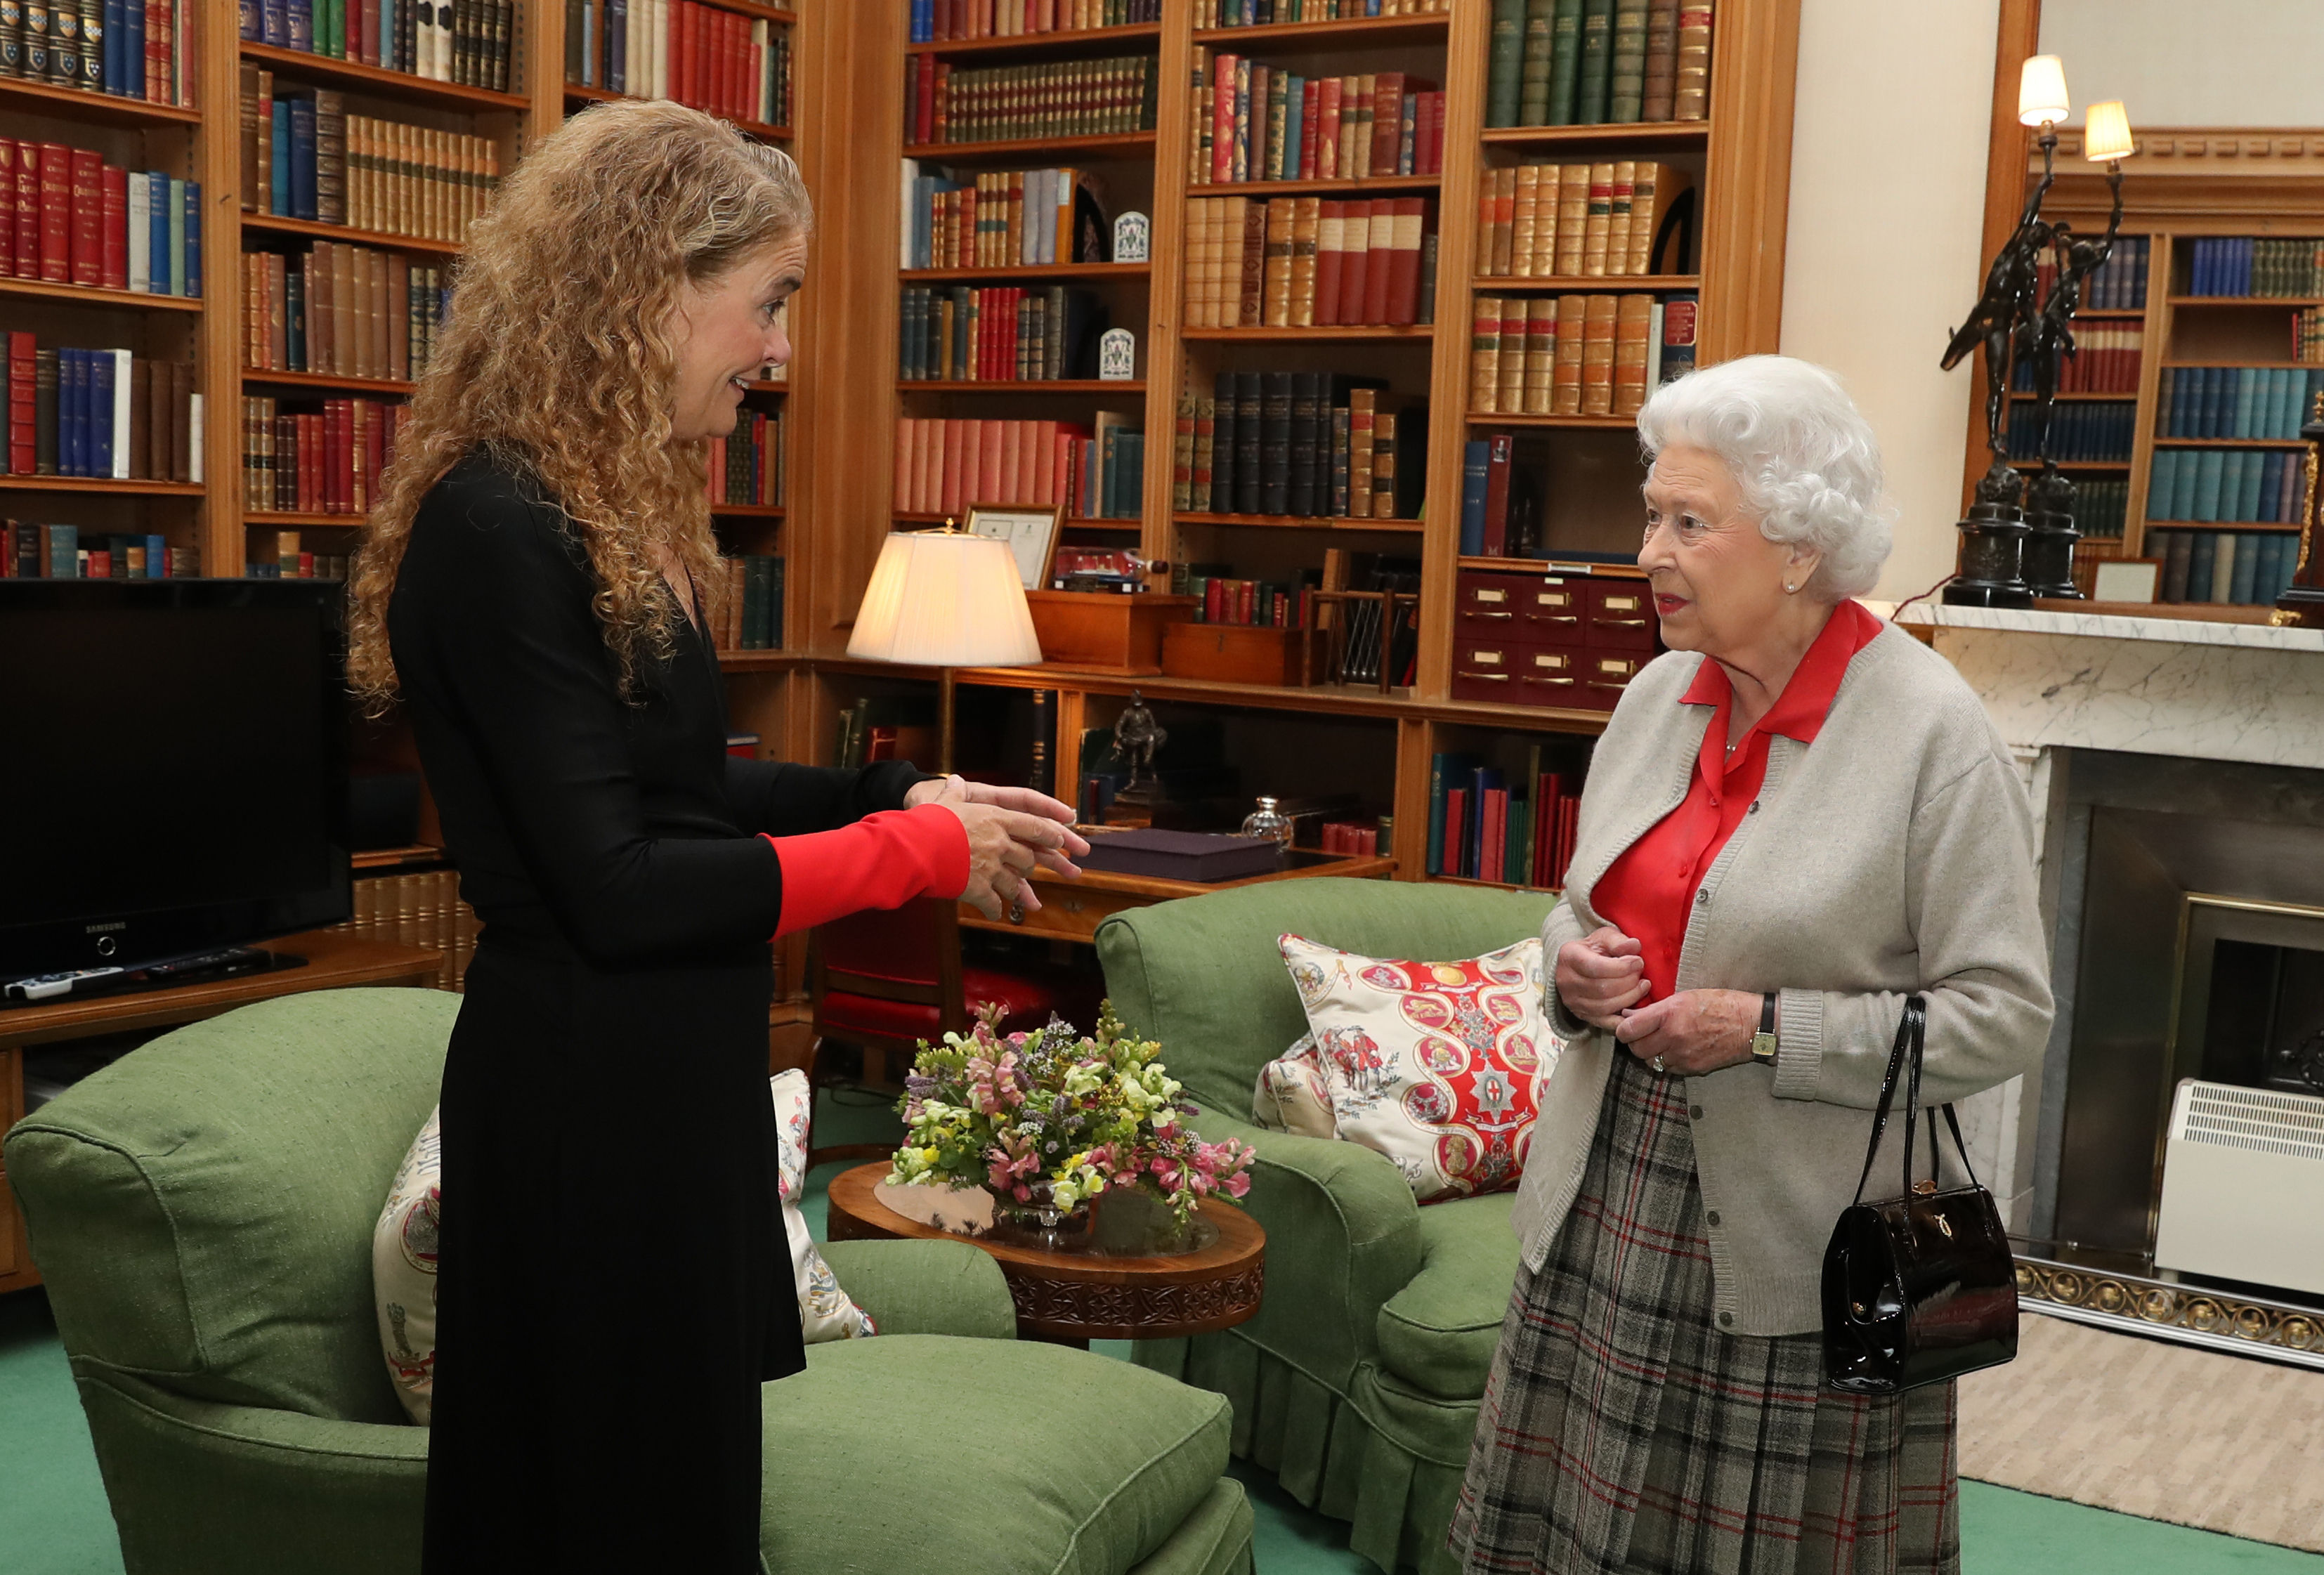 Governor General Designate Julie Payette had her first audience with Her Majesty The Queen on September 20, 2017. The meeting took place at Balmoral Castle, Her Majesty's summer residence in Scotland.